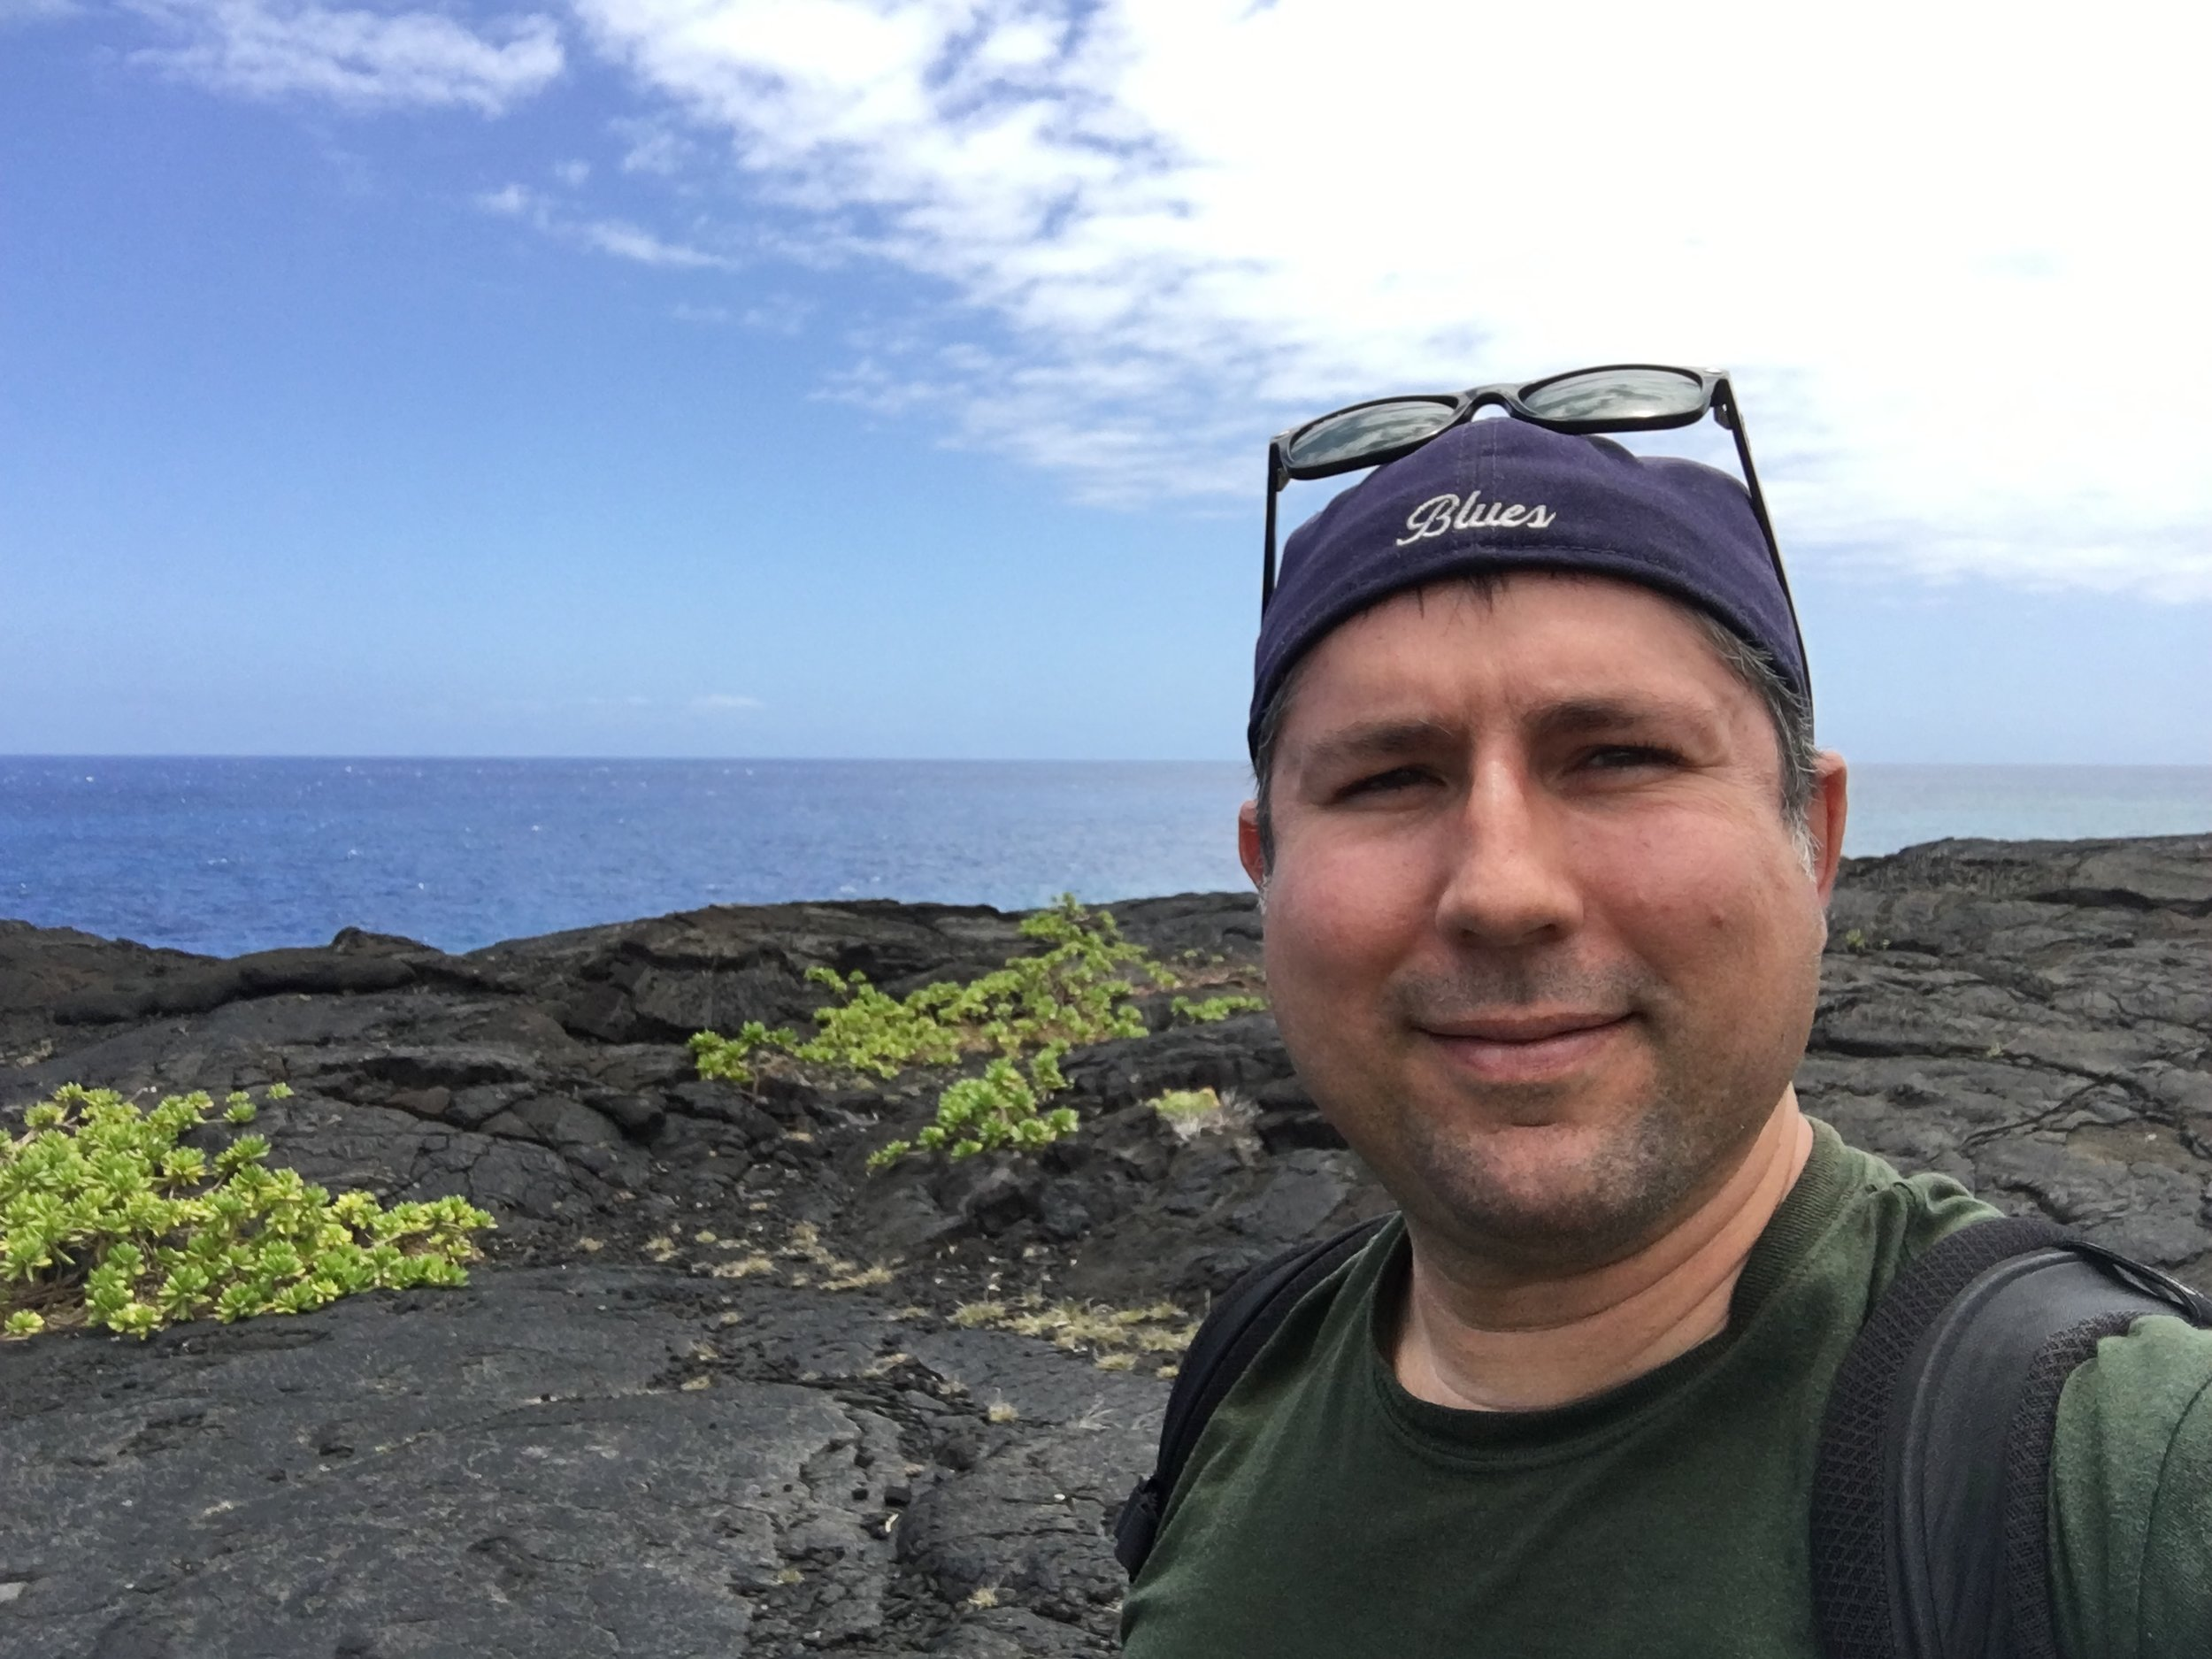 Near the end of the Chain of Craters Road, Hawaii Volcanoes National Park, April 2016.